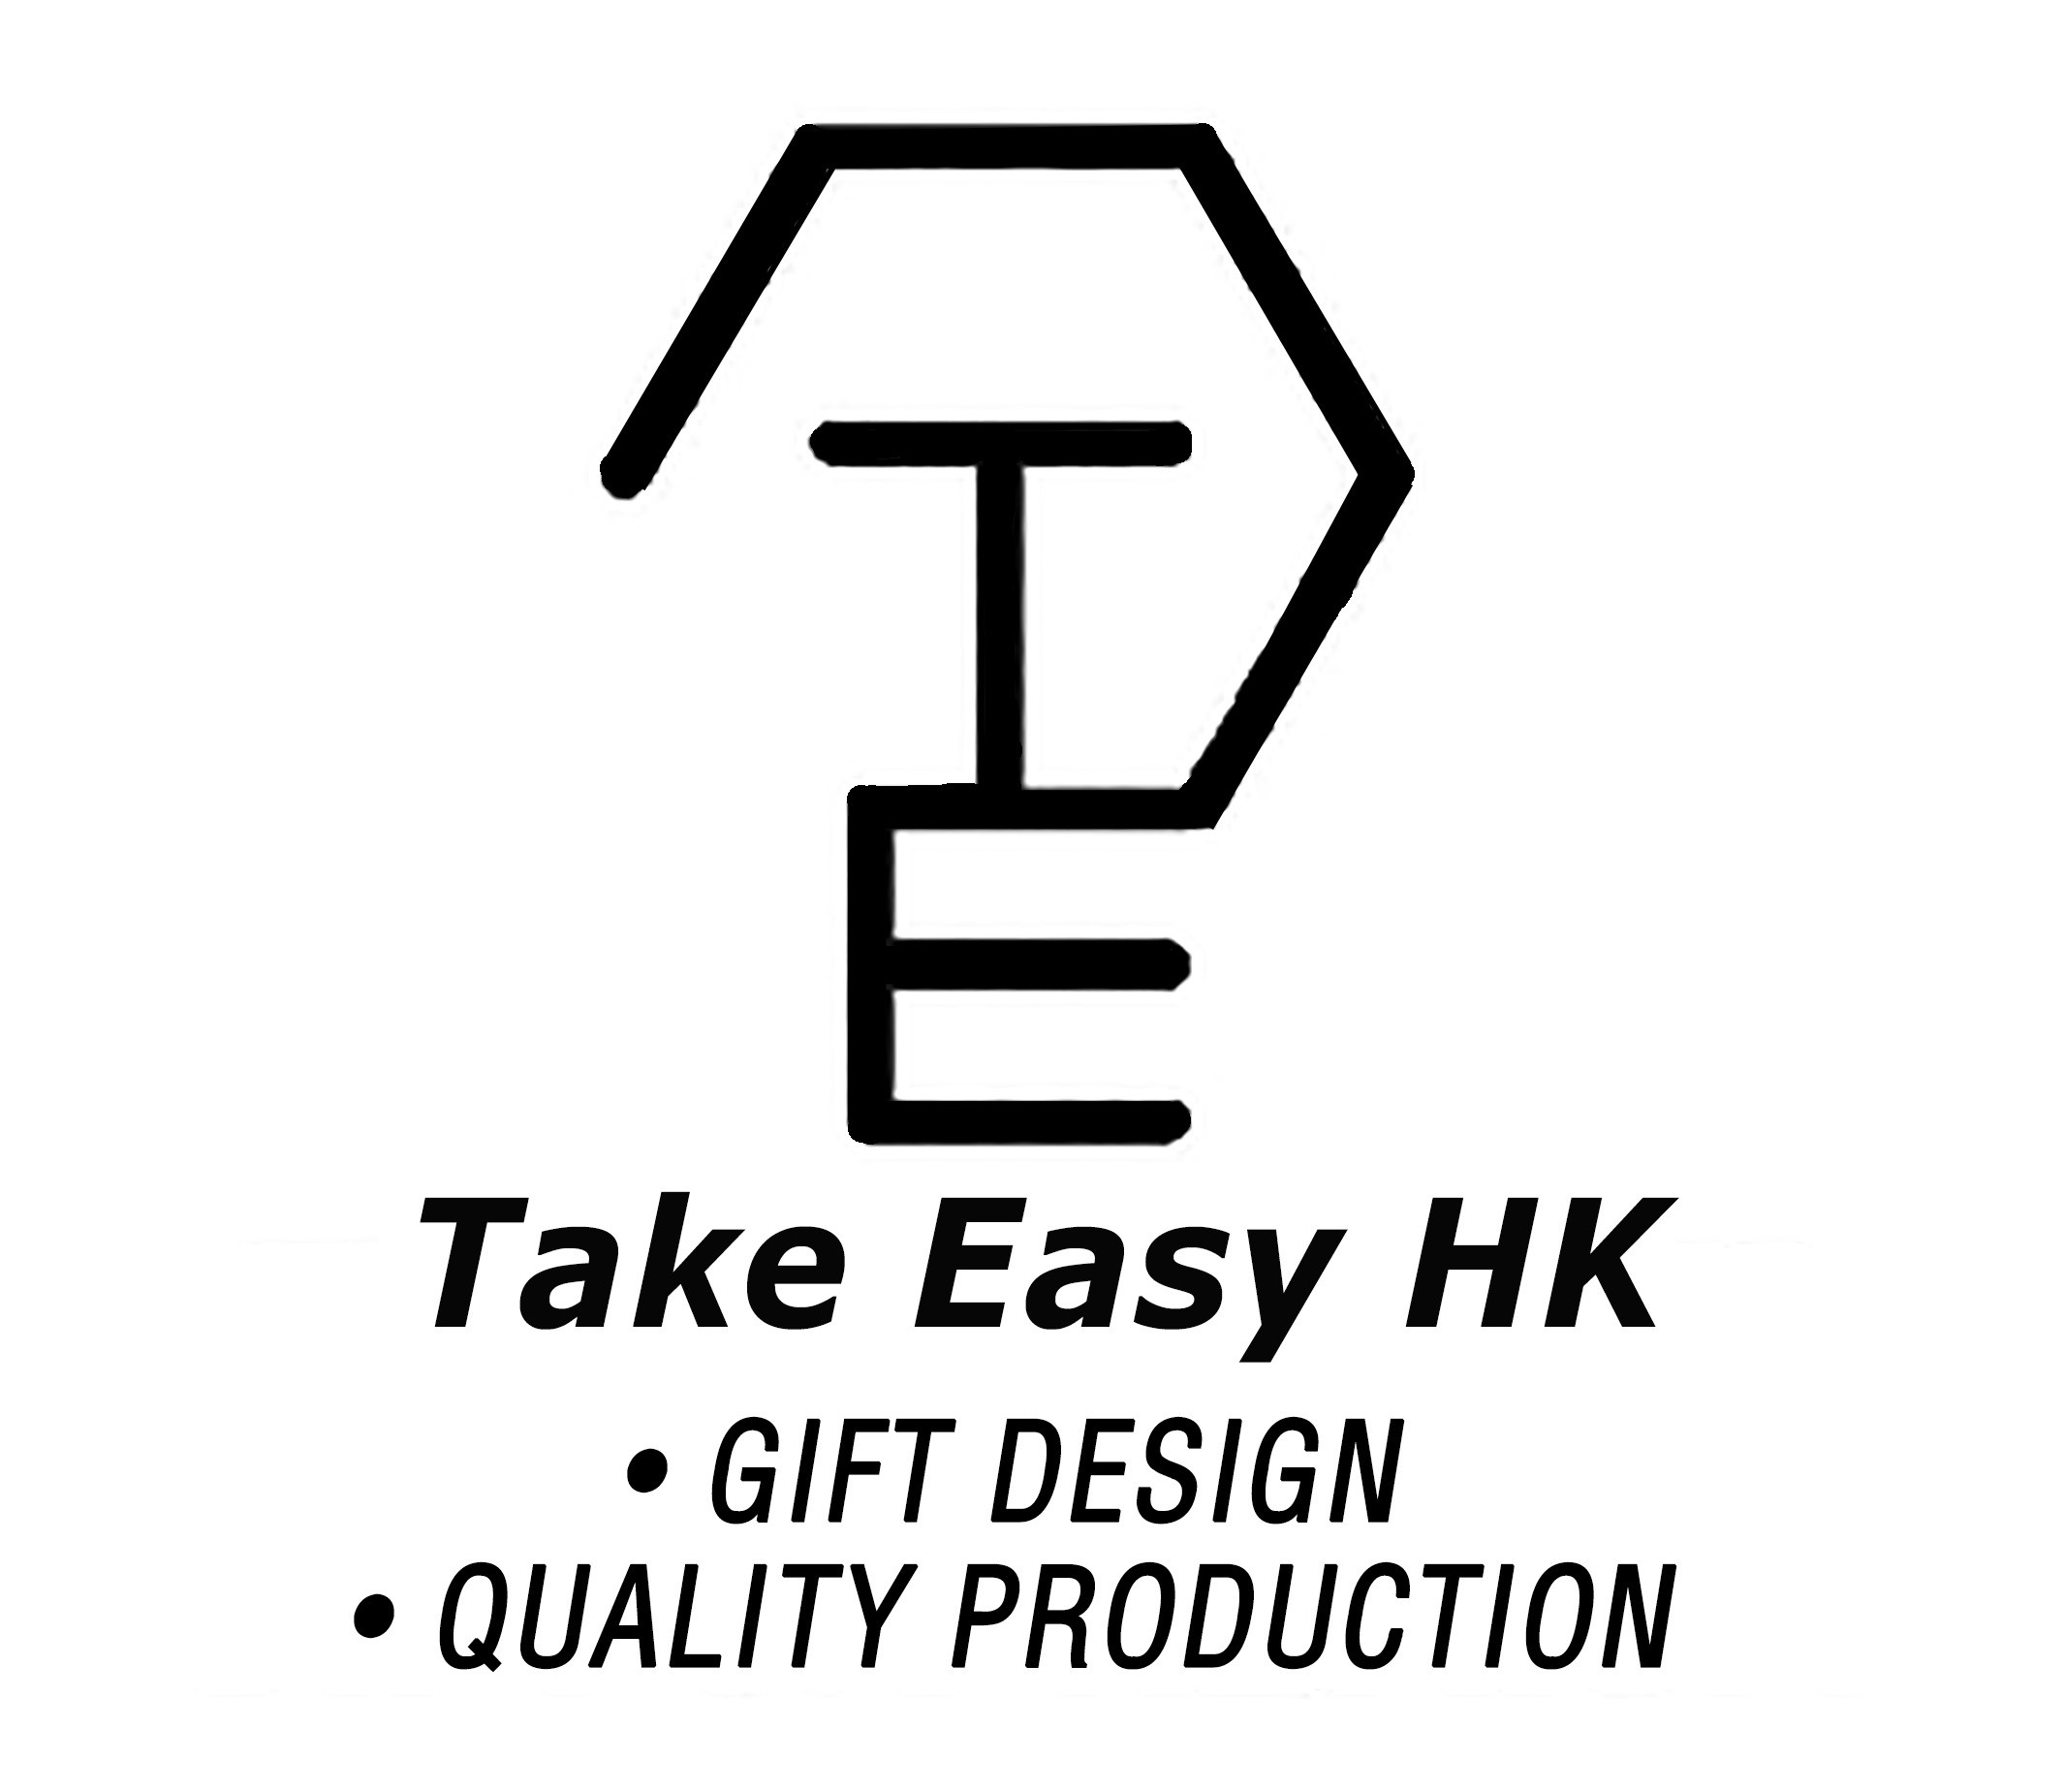 Take Easy Hong Kong